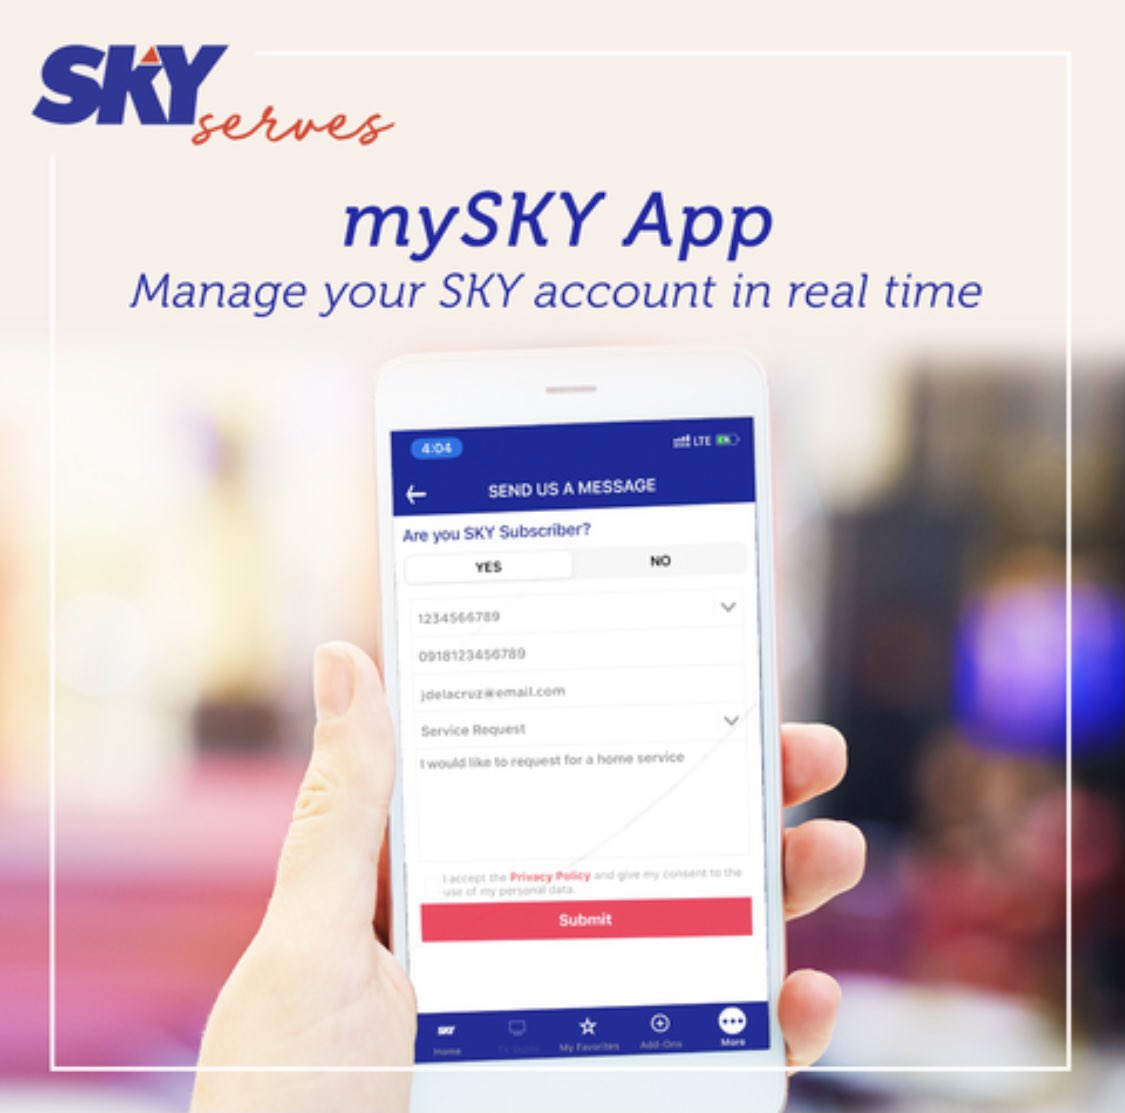 Sky On Twitter Sky Is Just A Few Phone Taps Away You Can Reach Us Using Your Mobile Phone Through The Following Web Contact Form Visit Https T Co Ws5zerivky Mysky App Download